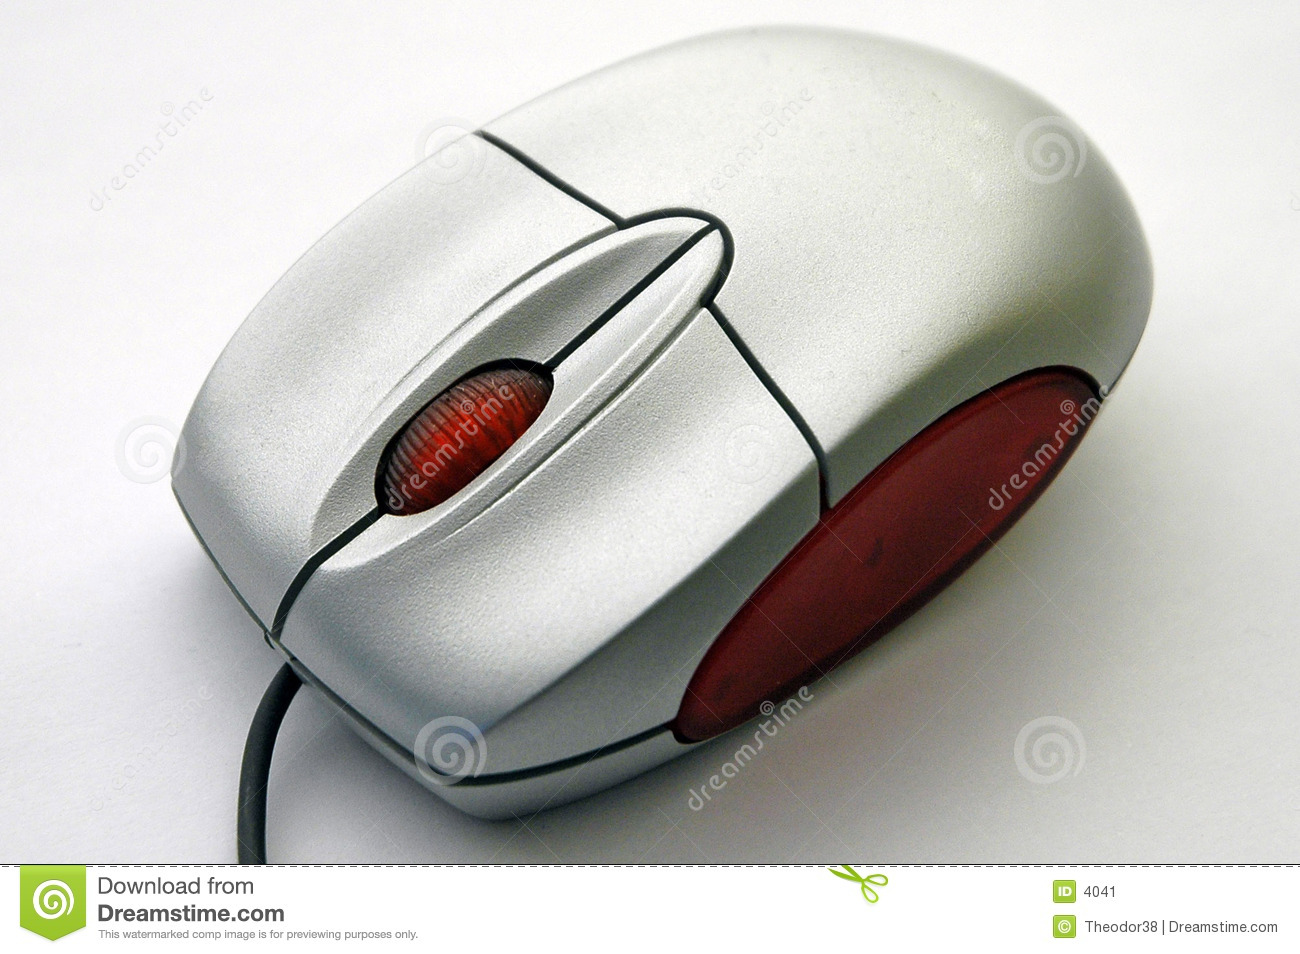 Computer mouse from diagonal view